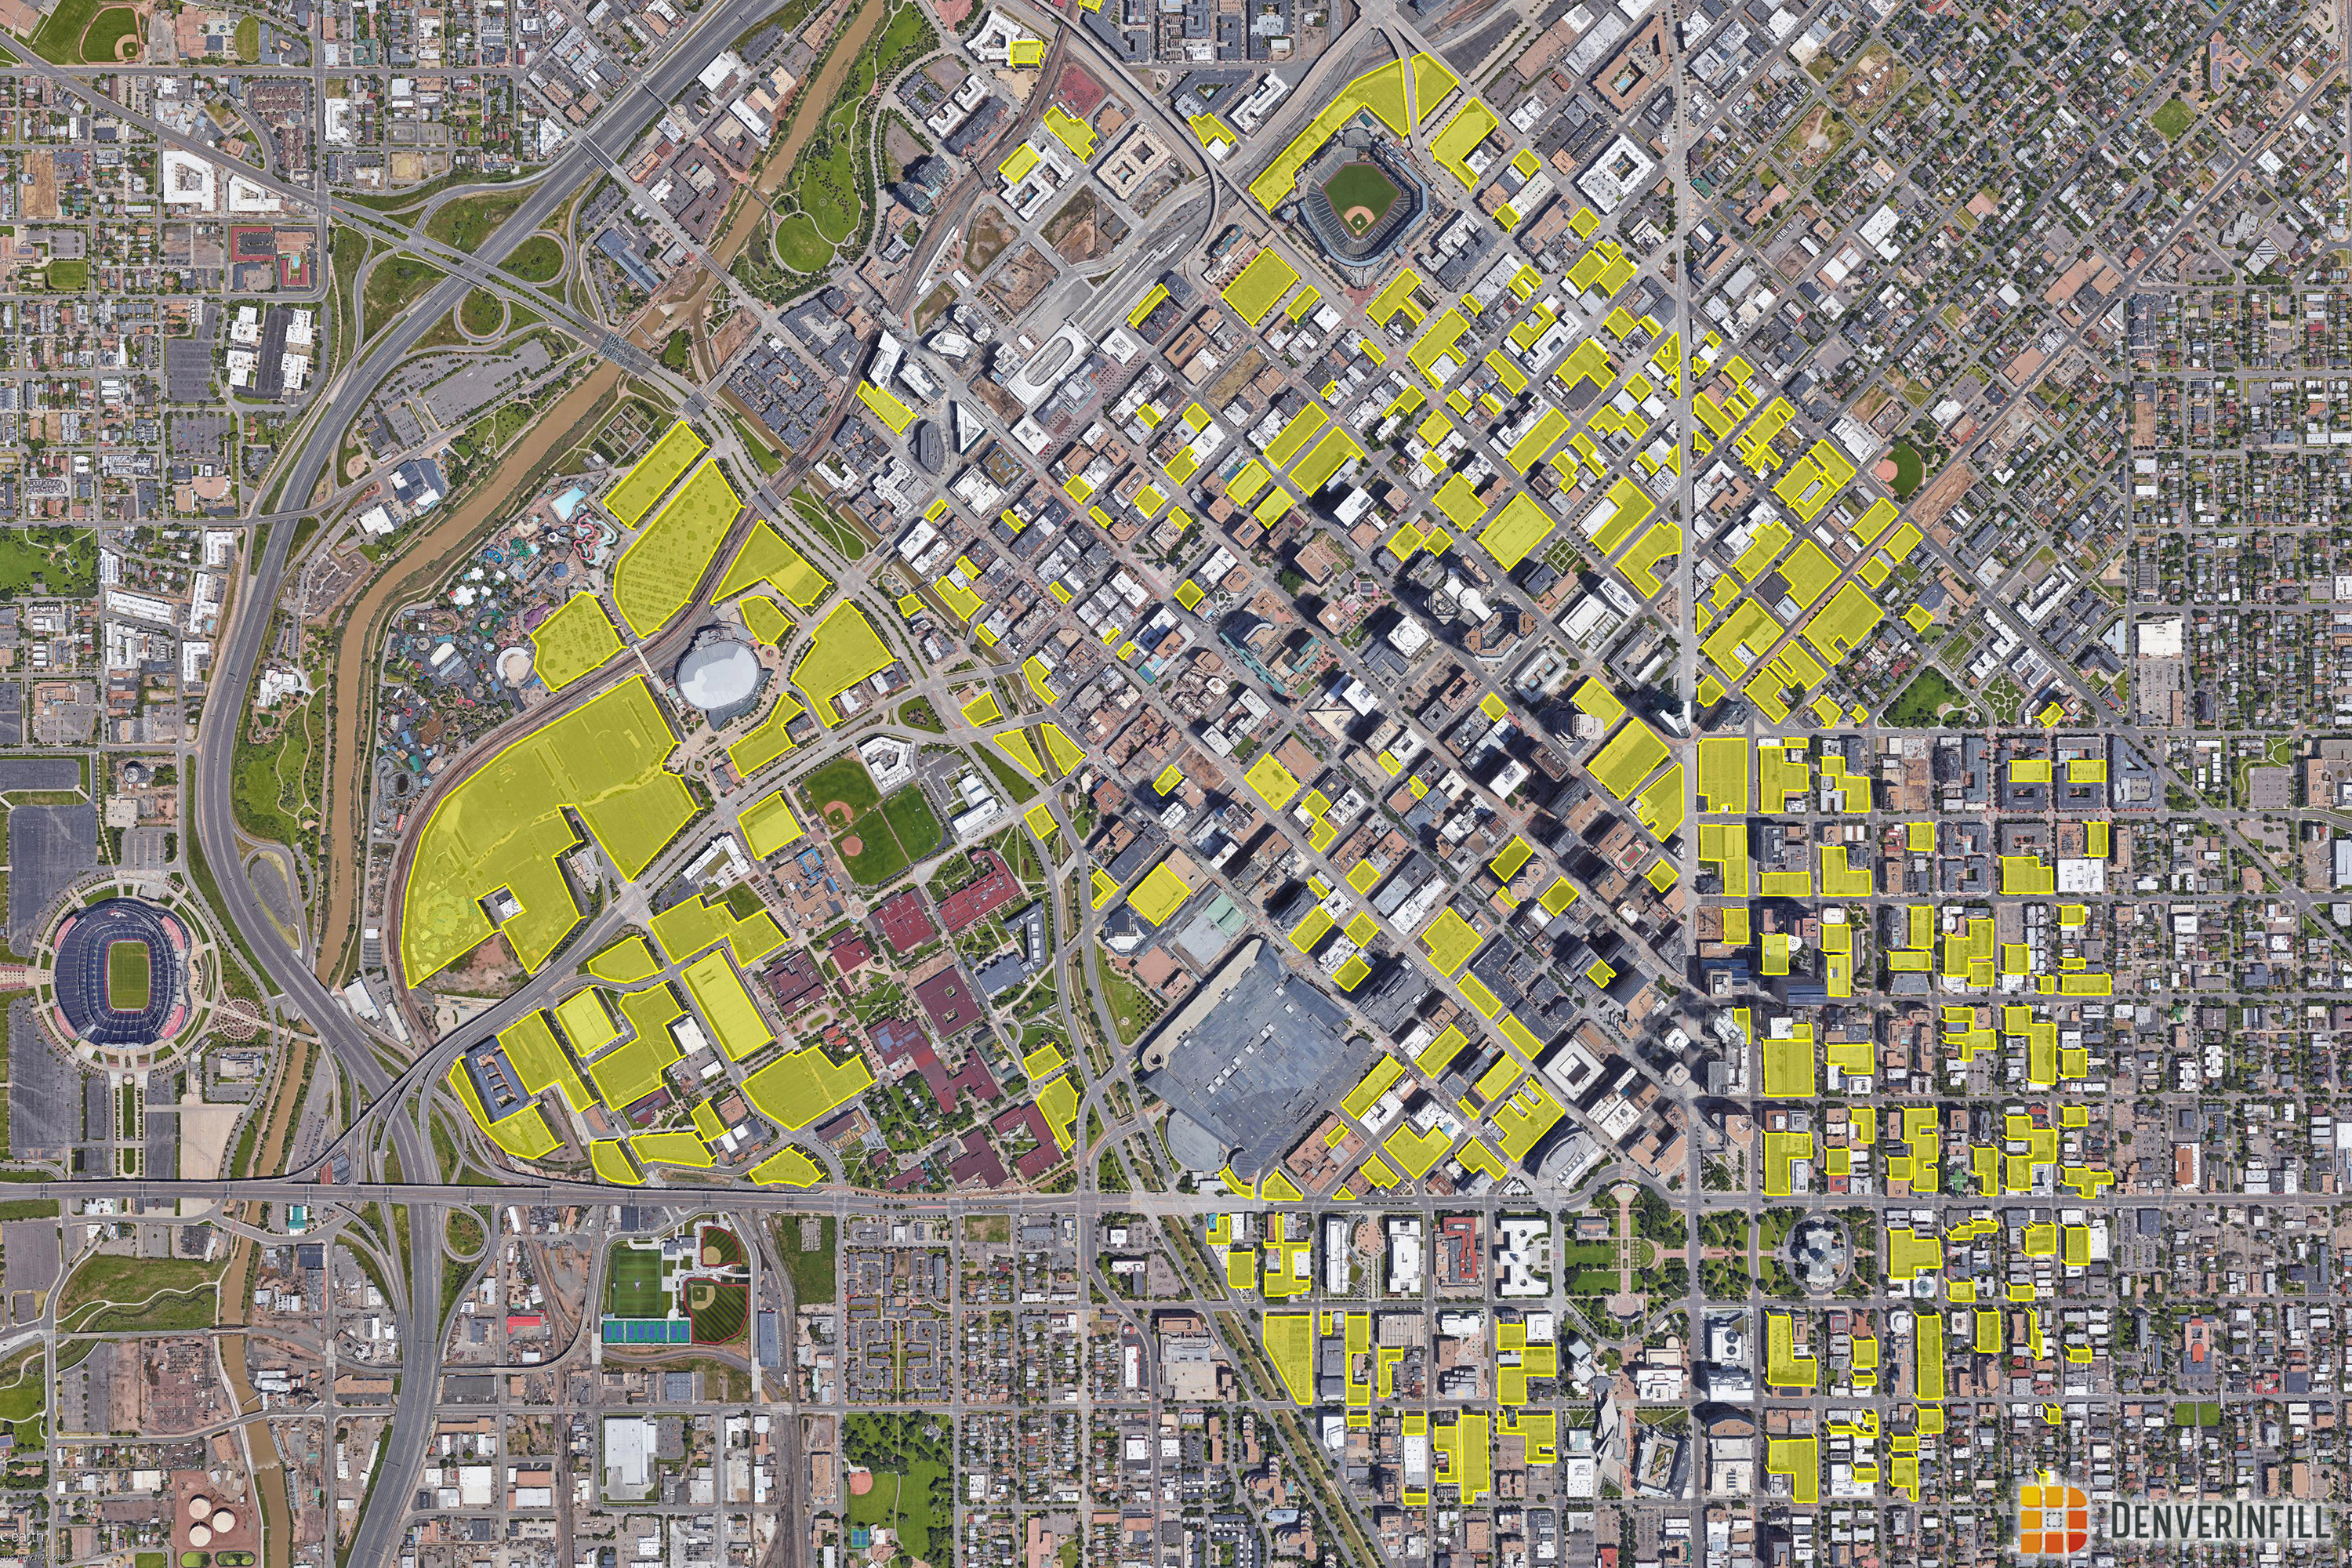 Visualization of Land Devoted to Parking